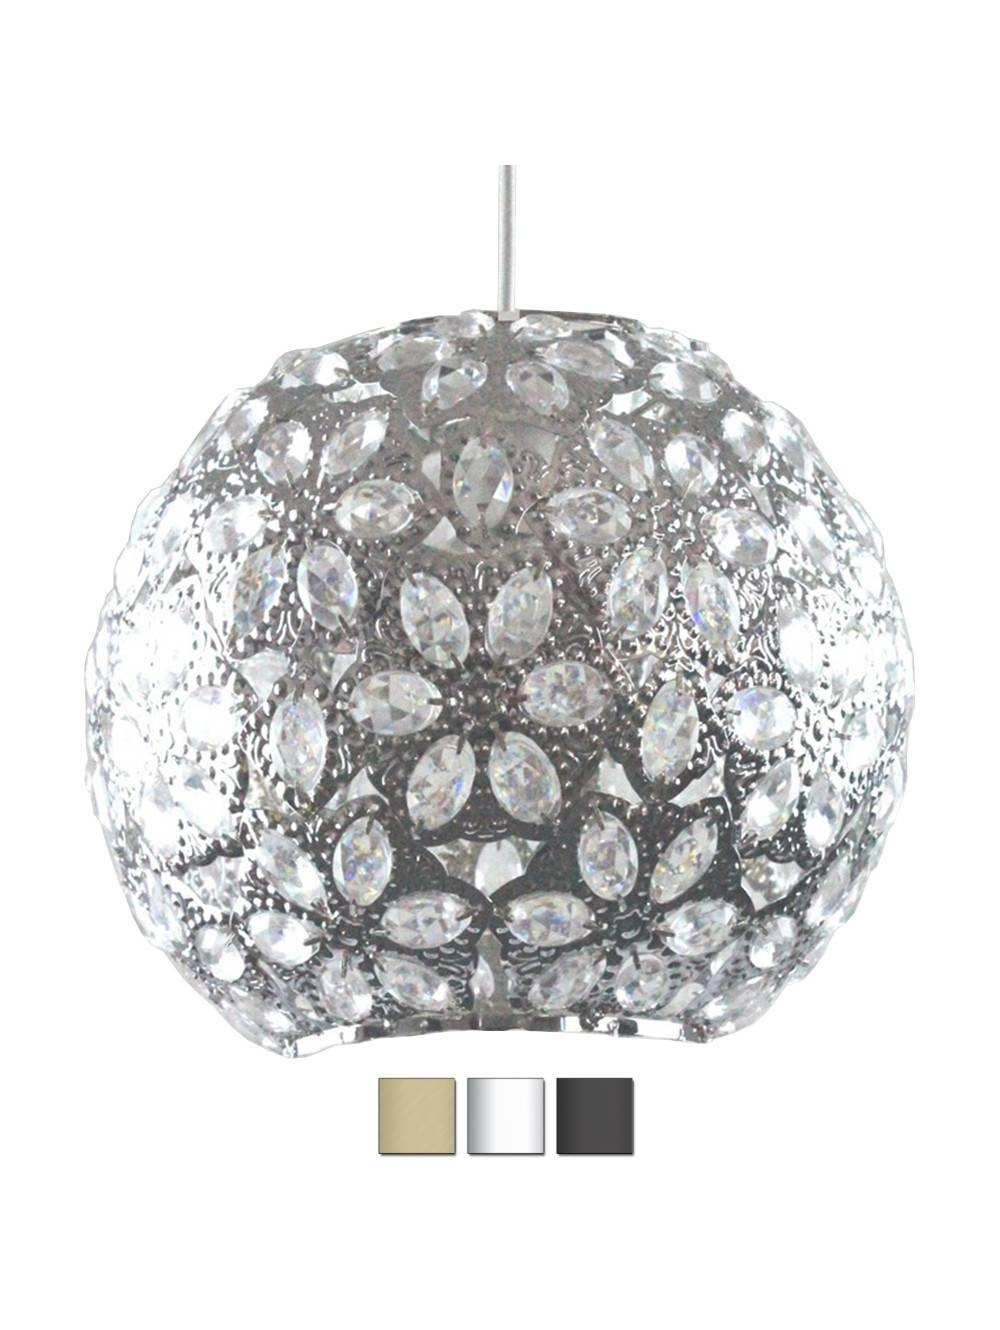 Moroccan Style Metal Ceiling Pendant Shade With Acrylic Jewel with Moroccan Style Pendant Ceiling Lights (Image 13 of 15)